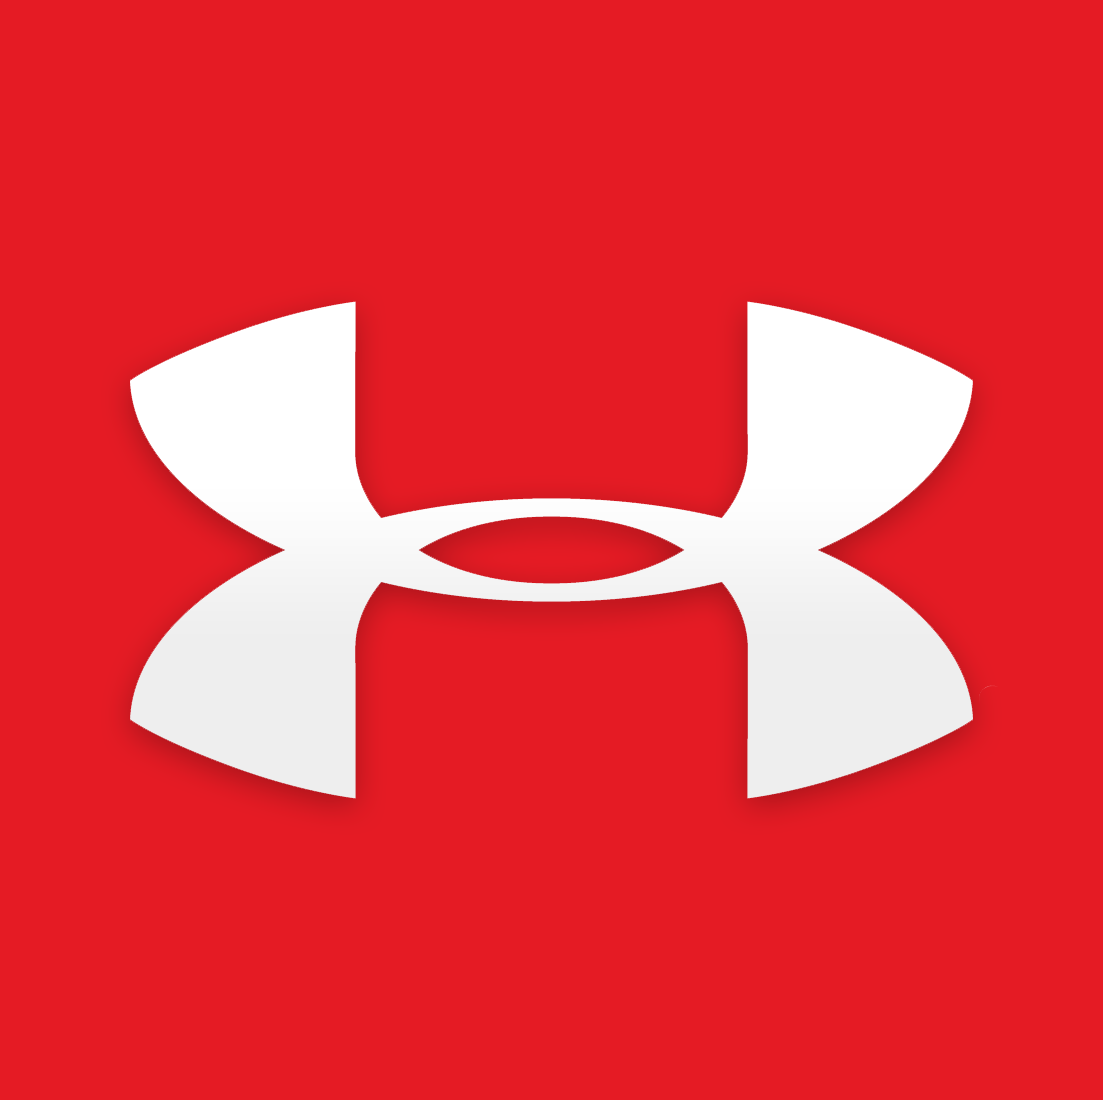 Under Armour Protect This House Under Armour Inc Class C Nyse